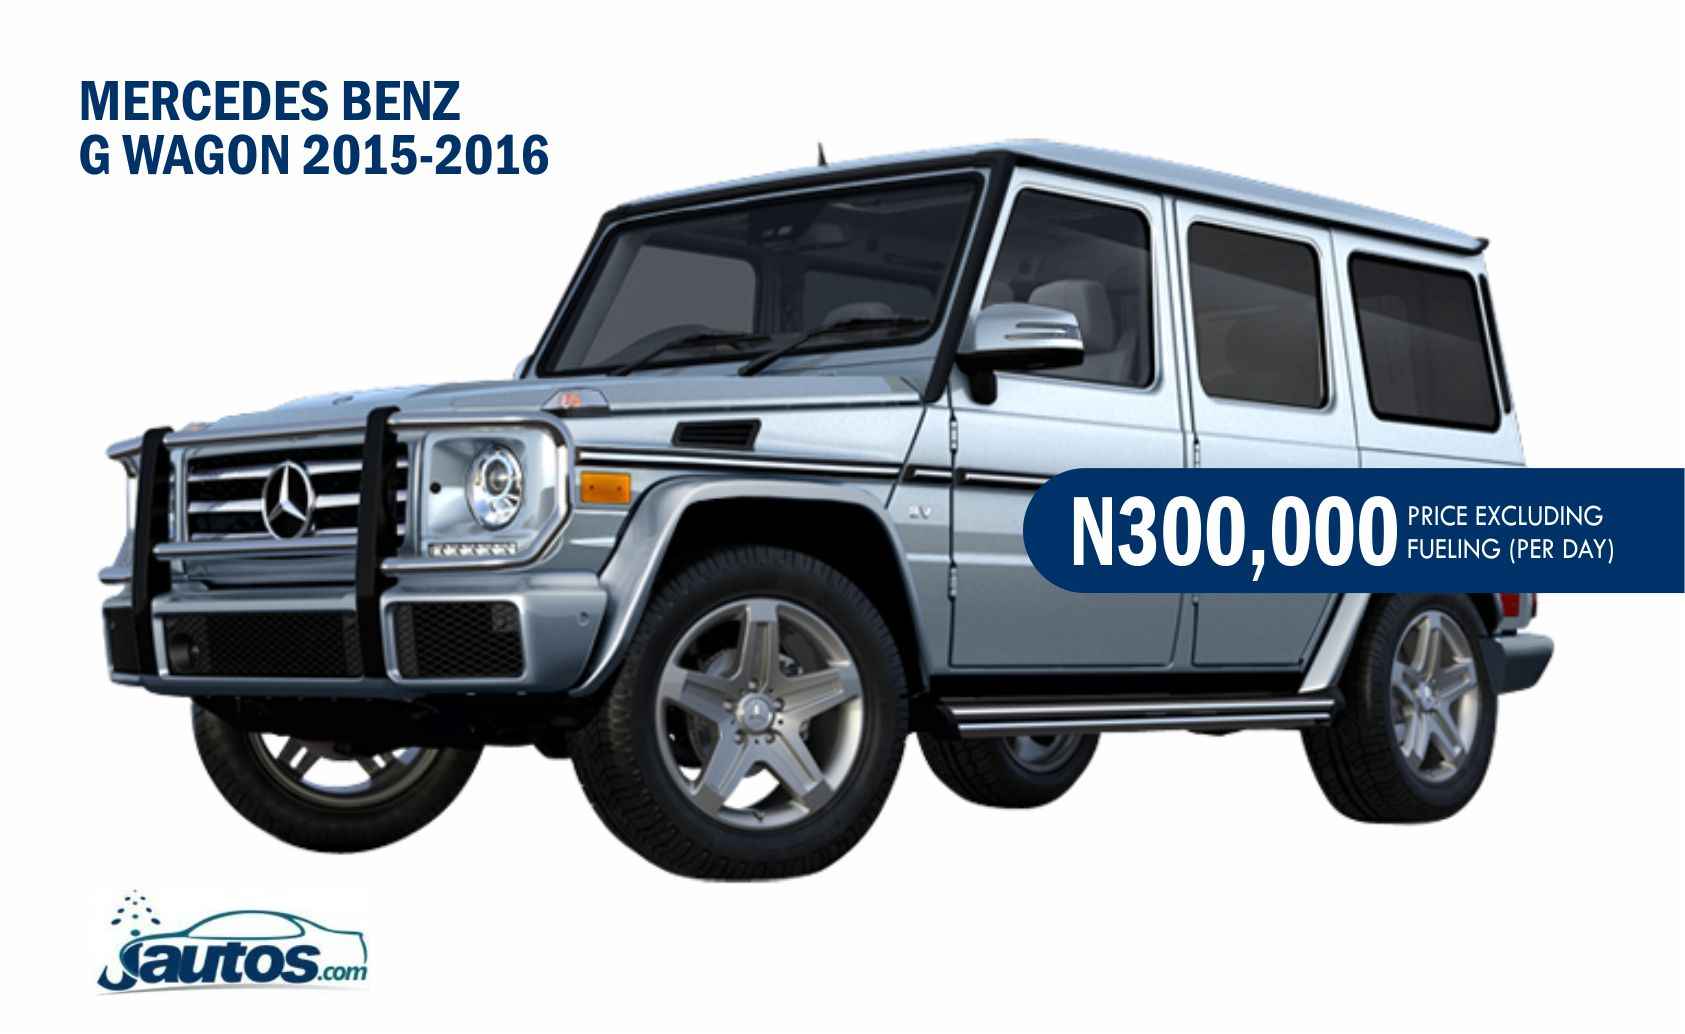 MERCEDES BENZ G WAGON 2015-2016- N300,000 (AMOUNT PER DAY WITHOUT FUELING)